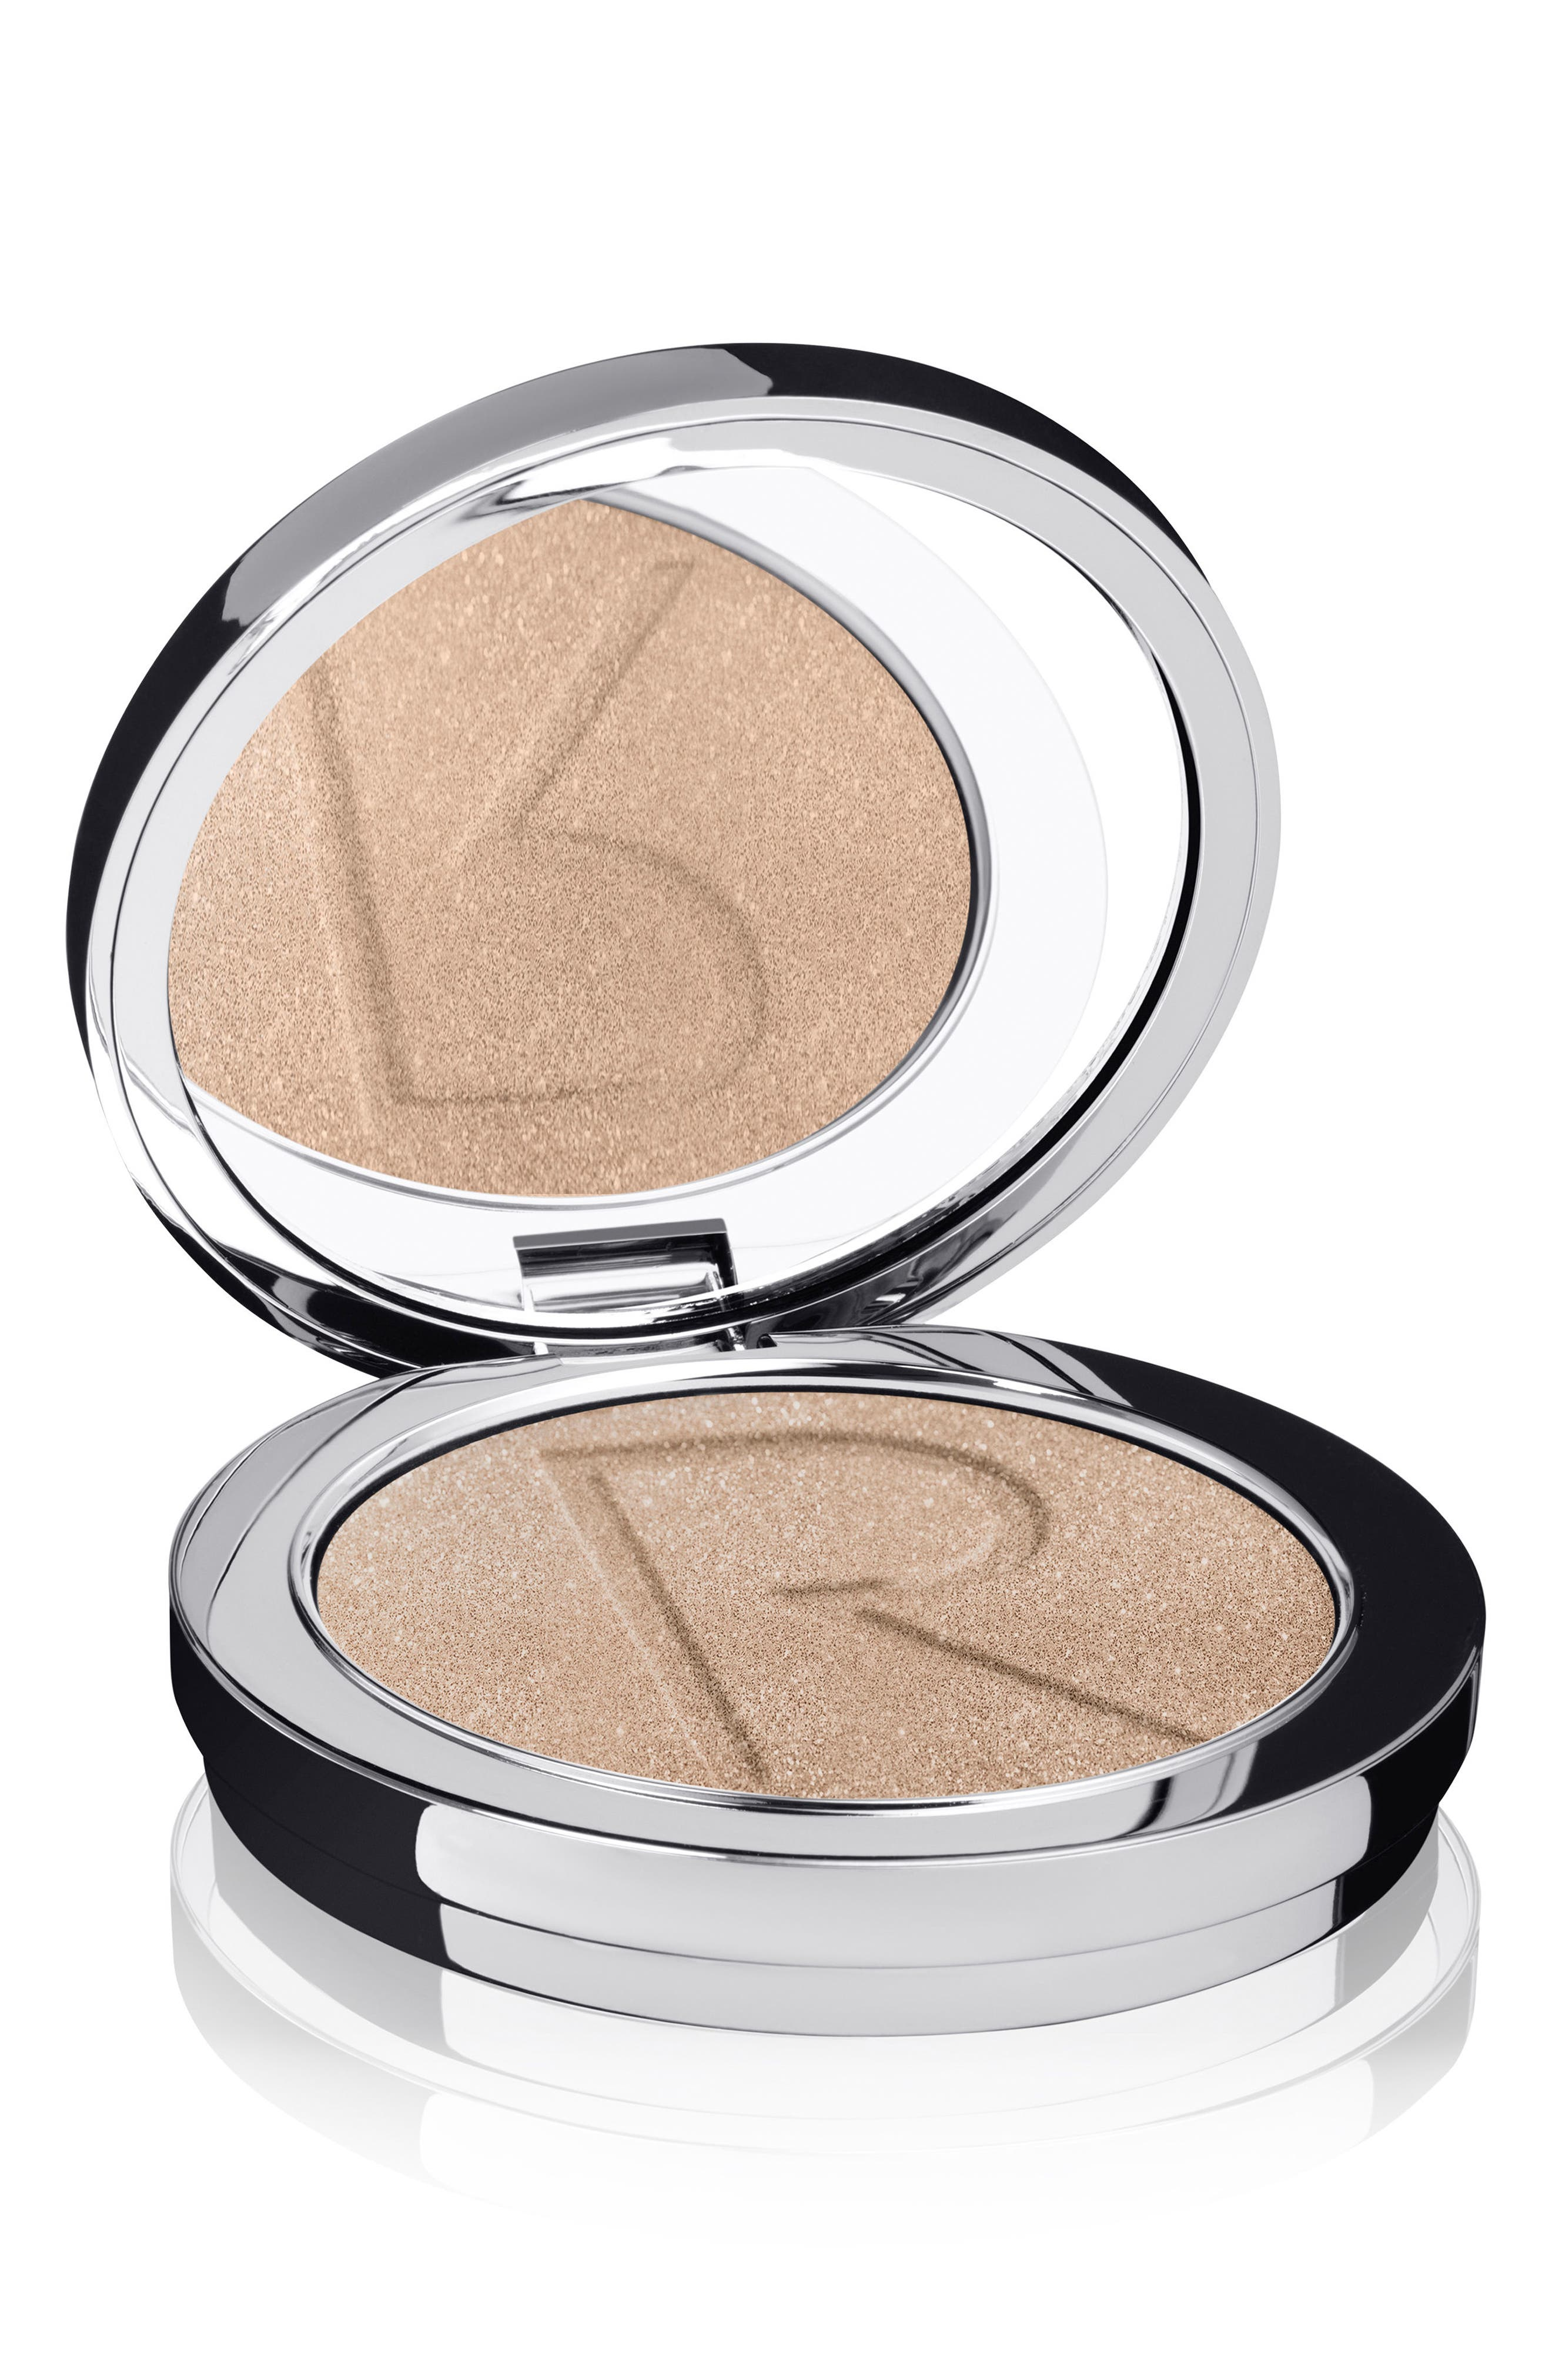 SPACE.NK.apothecary Rodial Instaglam<sup>™</sup> Deluxe Highlighting Powder Compact,                         Main,                         color, 100